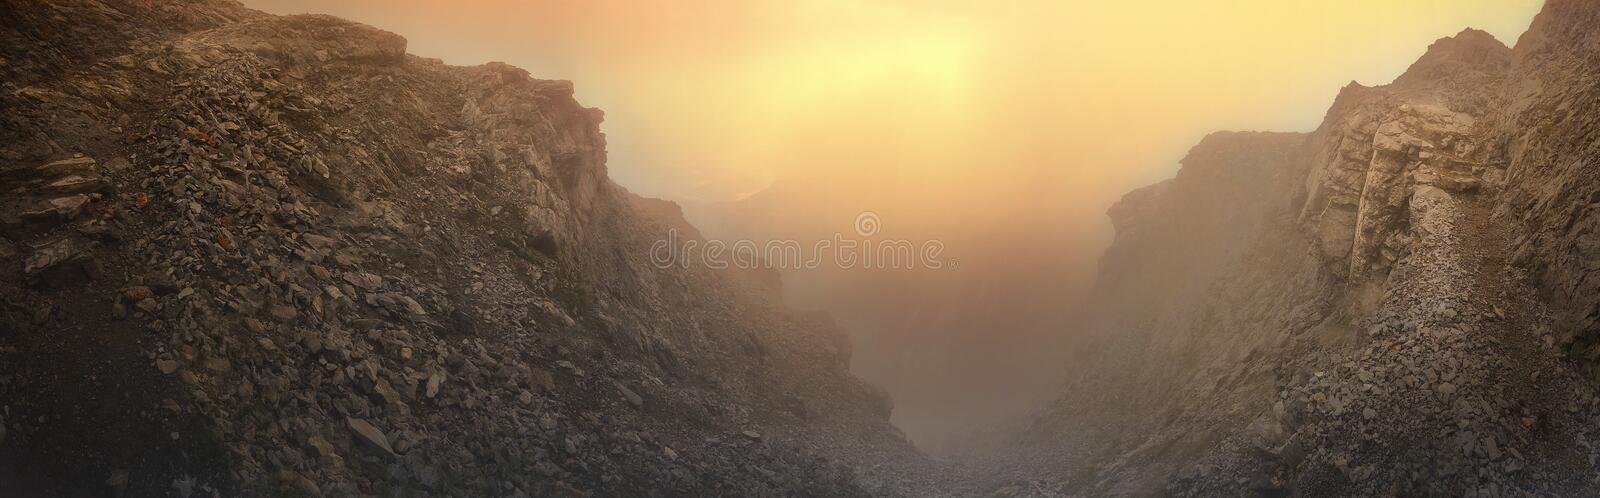 Magnificent sunset at the mythical Mount Olympus in Greece royalty free stock photography